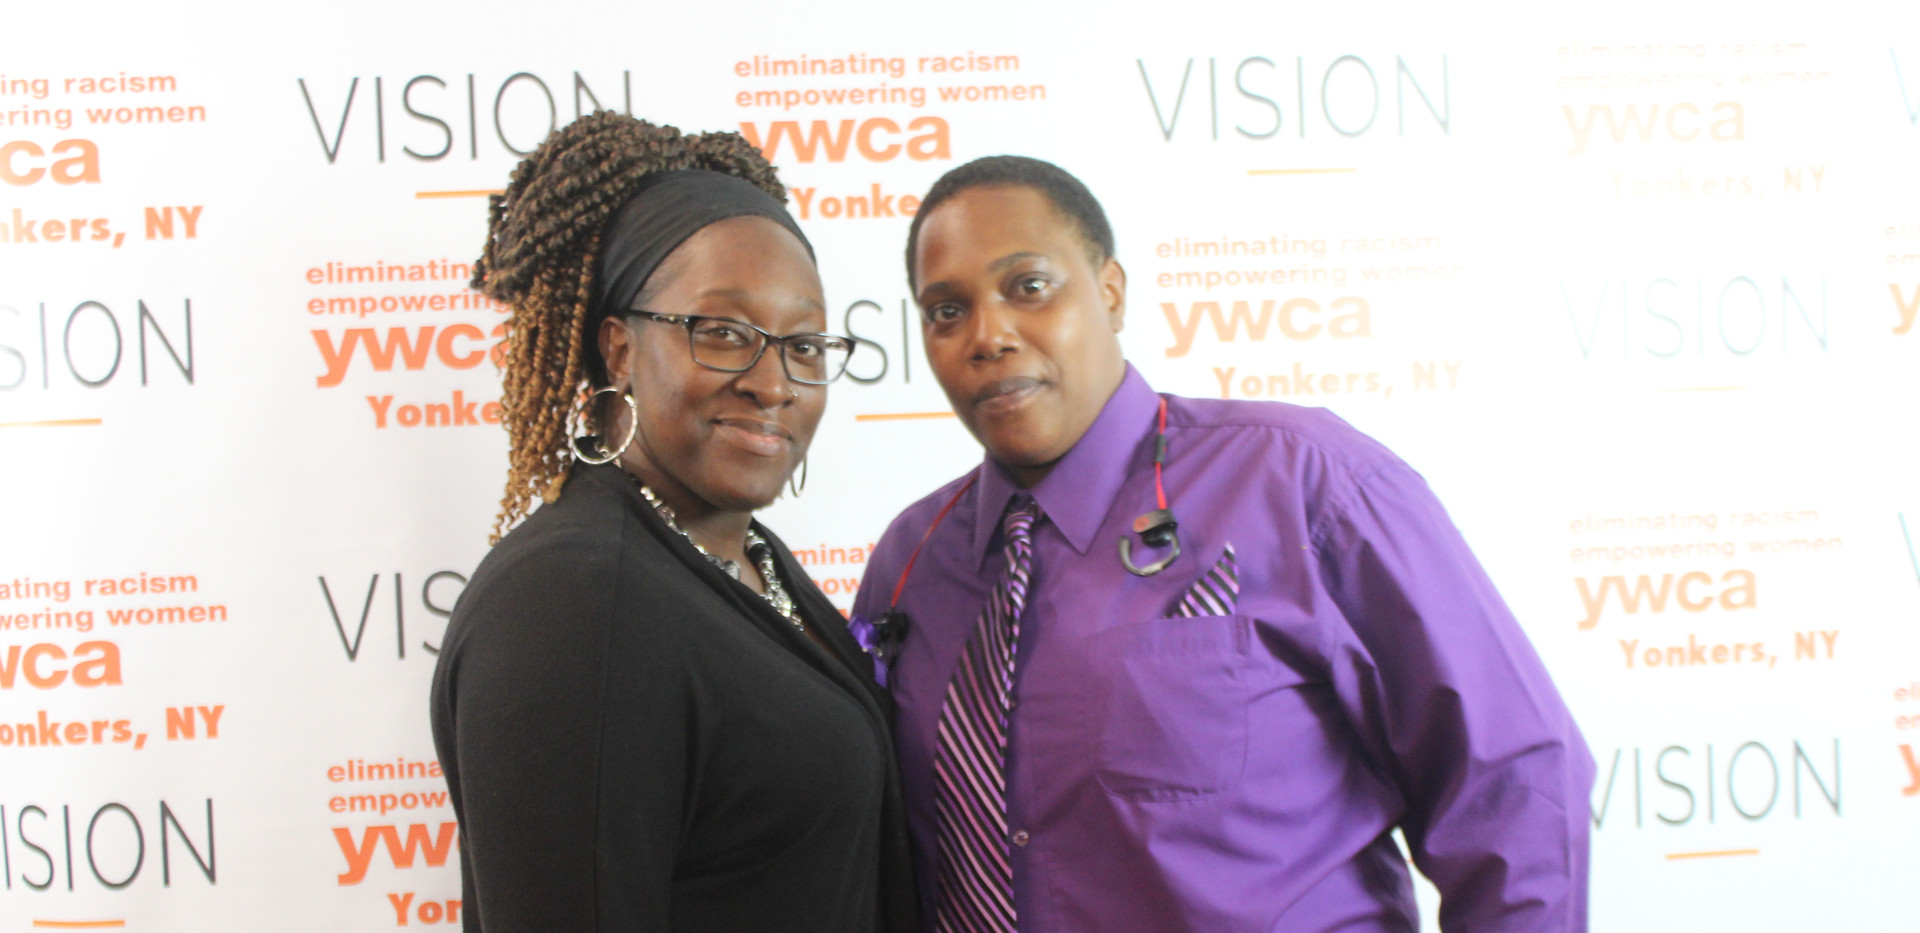 Y team member Shaquonia and Starr